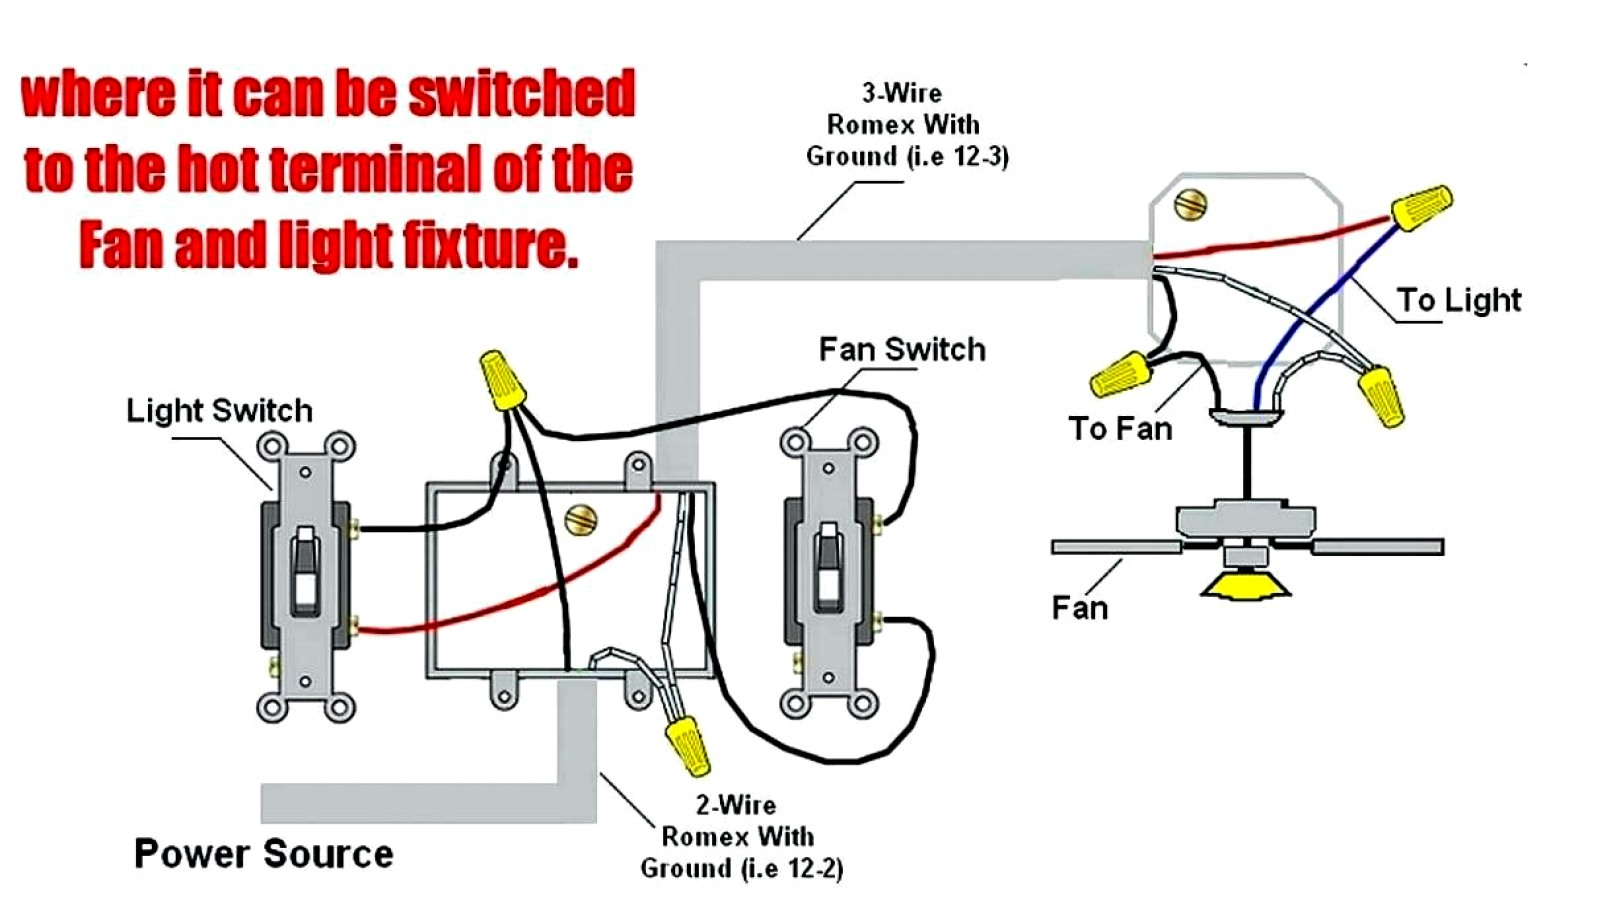 Two Switch Ceiling Fan Wiring Diagram - Go Wiring Diagram - Wiring Diagram For Ceiling Fan With Lights